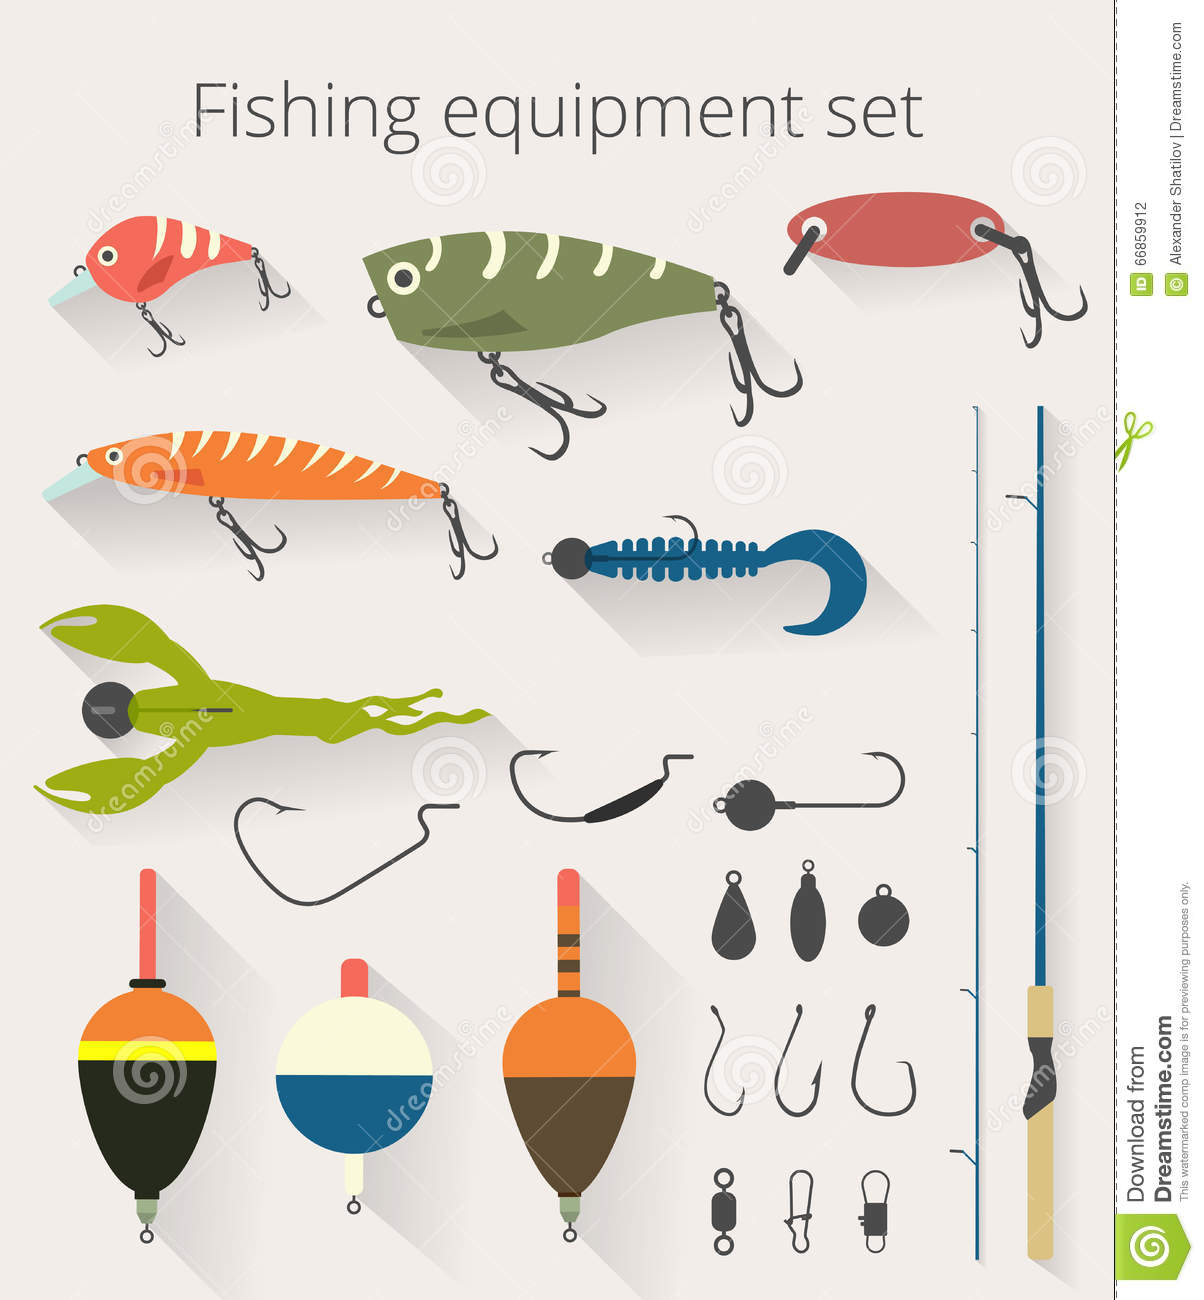 fishing set of accessories for spinning fishing with crankbait, Fishing Bait